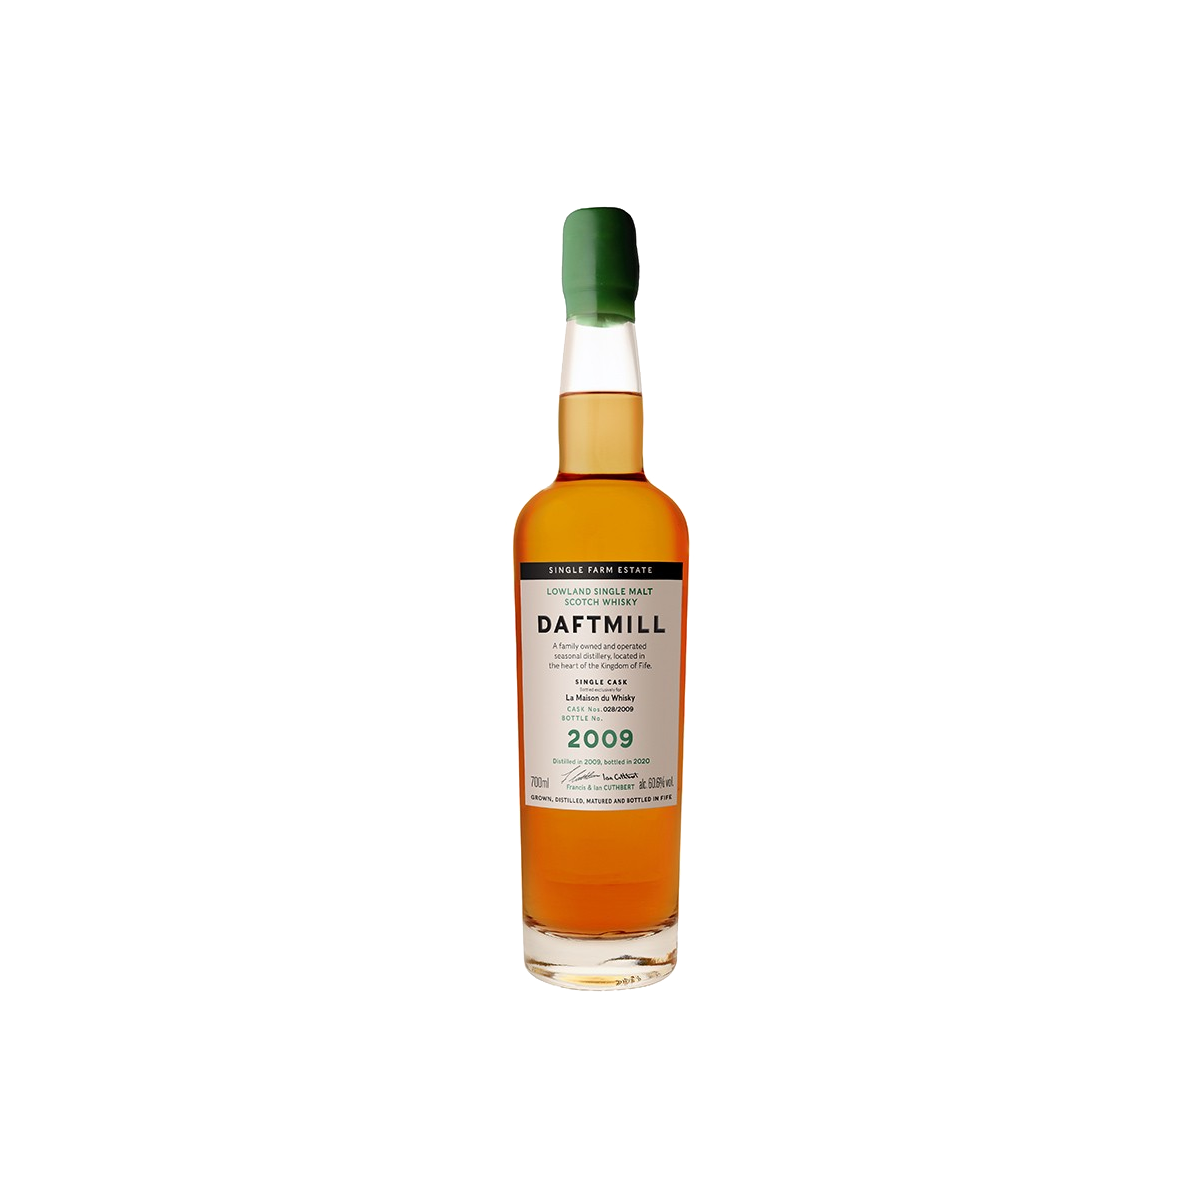 Daftmill 11 ans 2009 French Connections Whisky 60,60 %